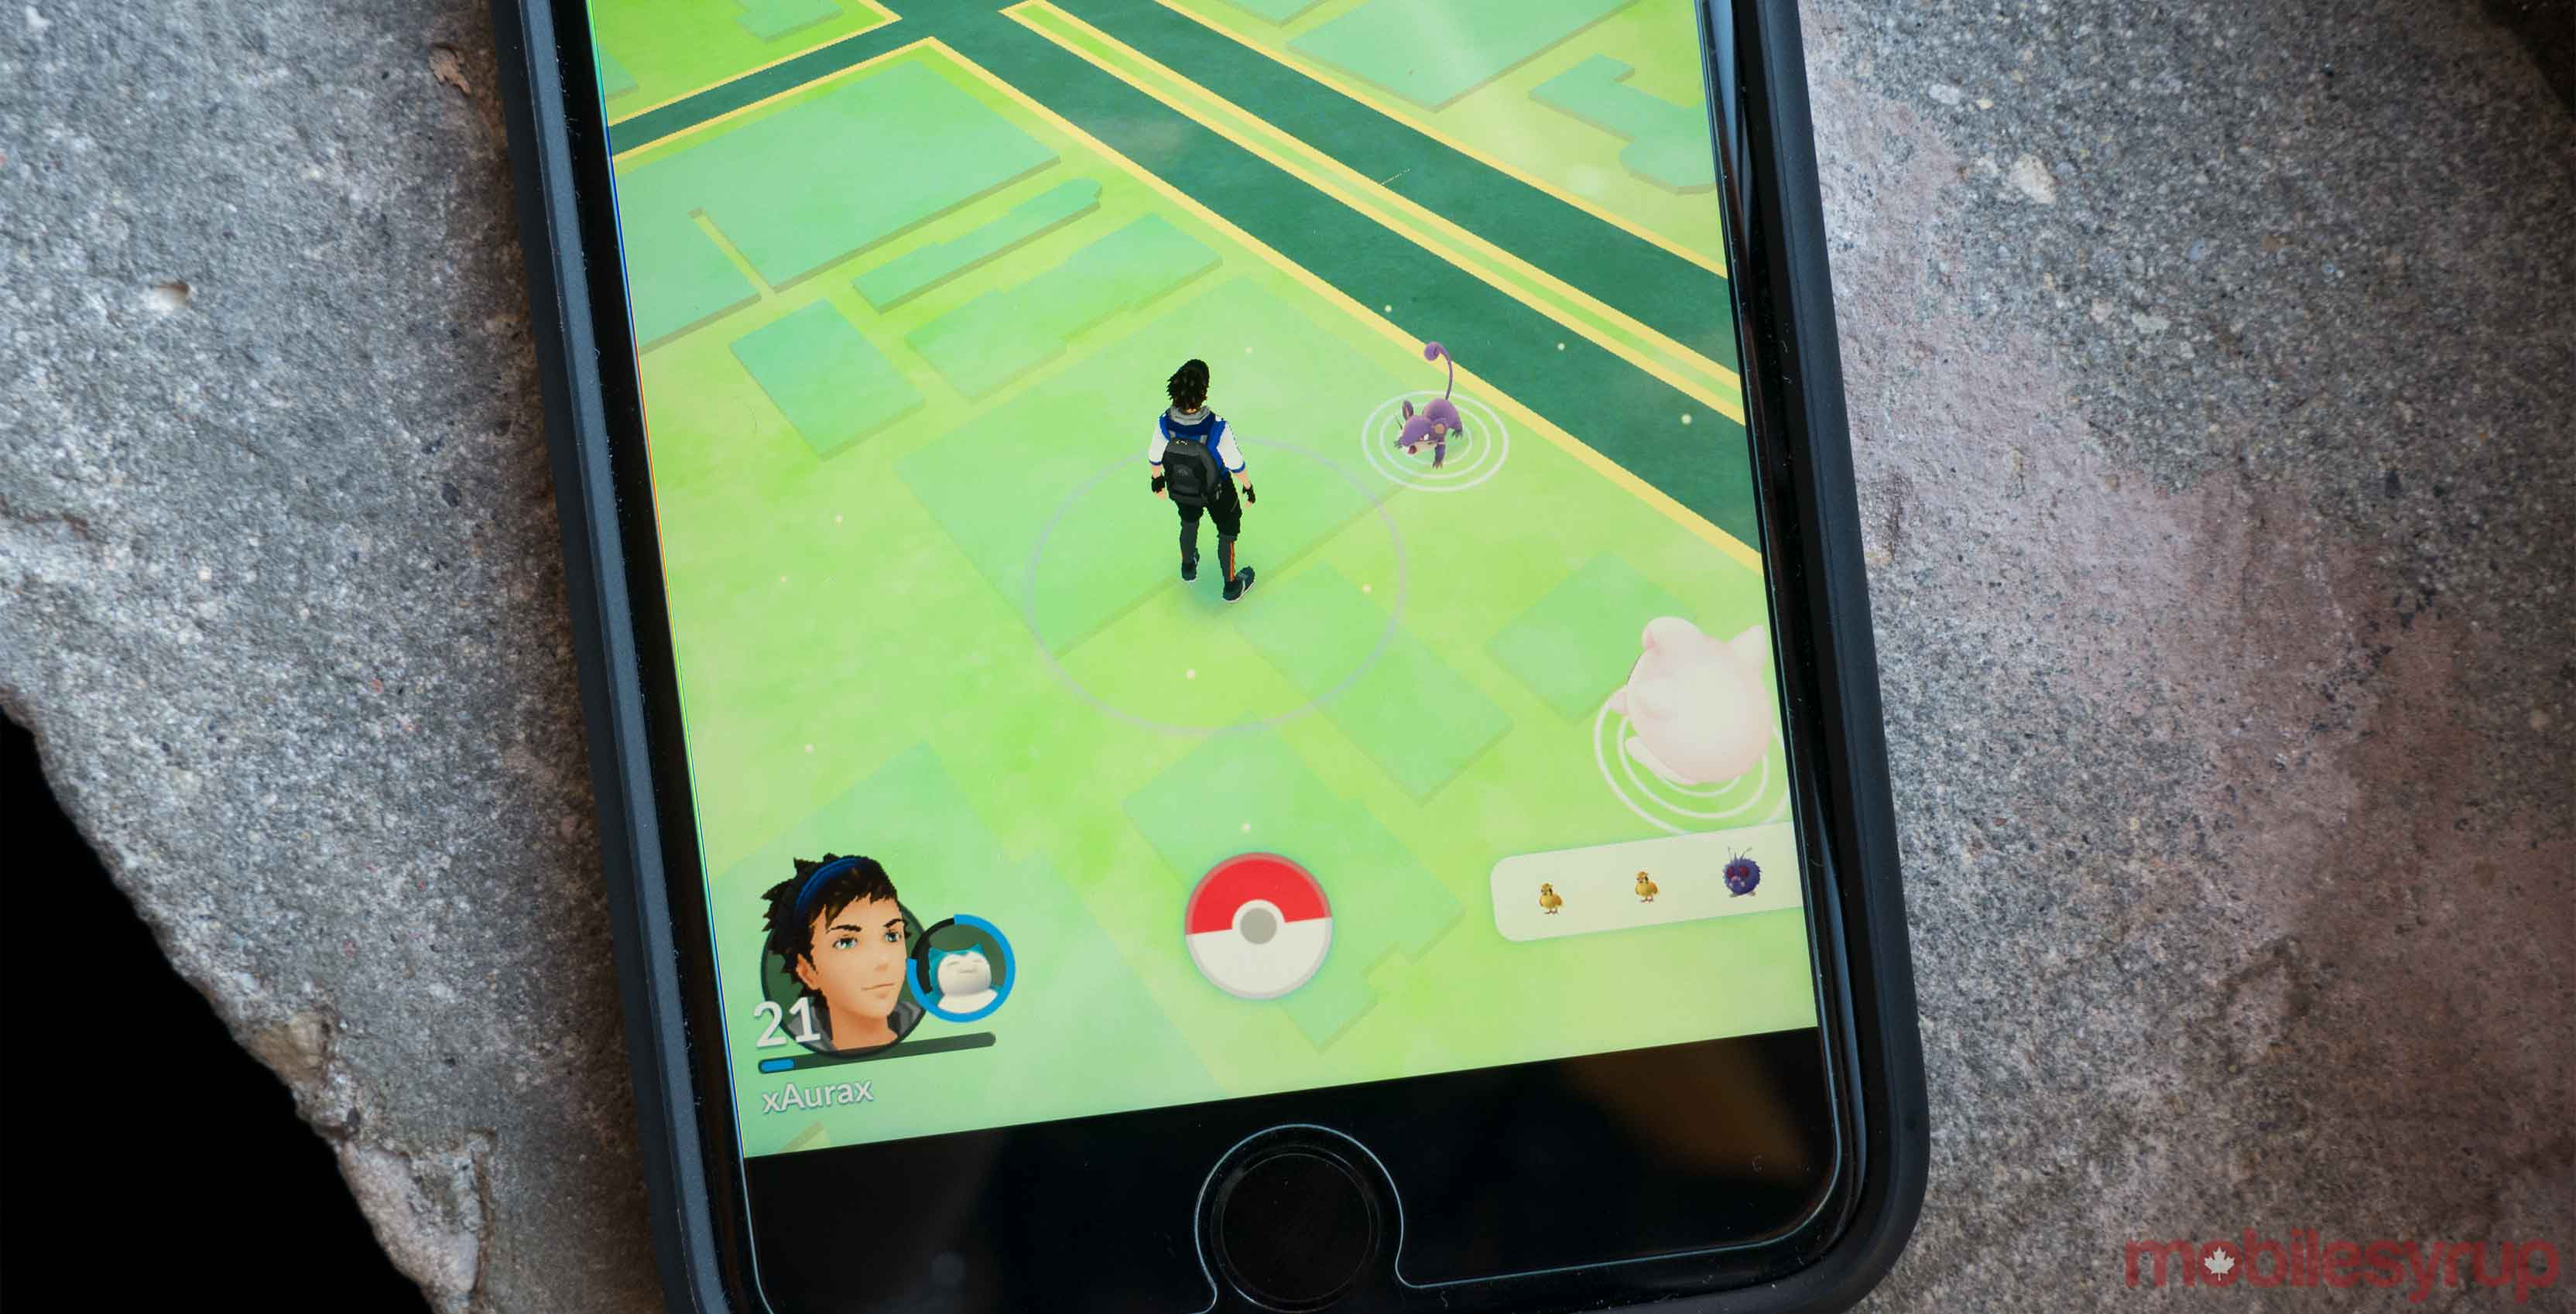 Photo of Pokemon Go on an iPhone